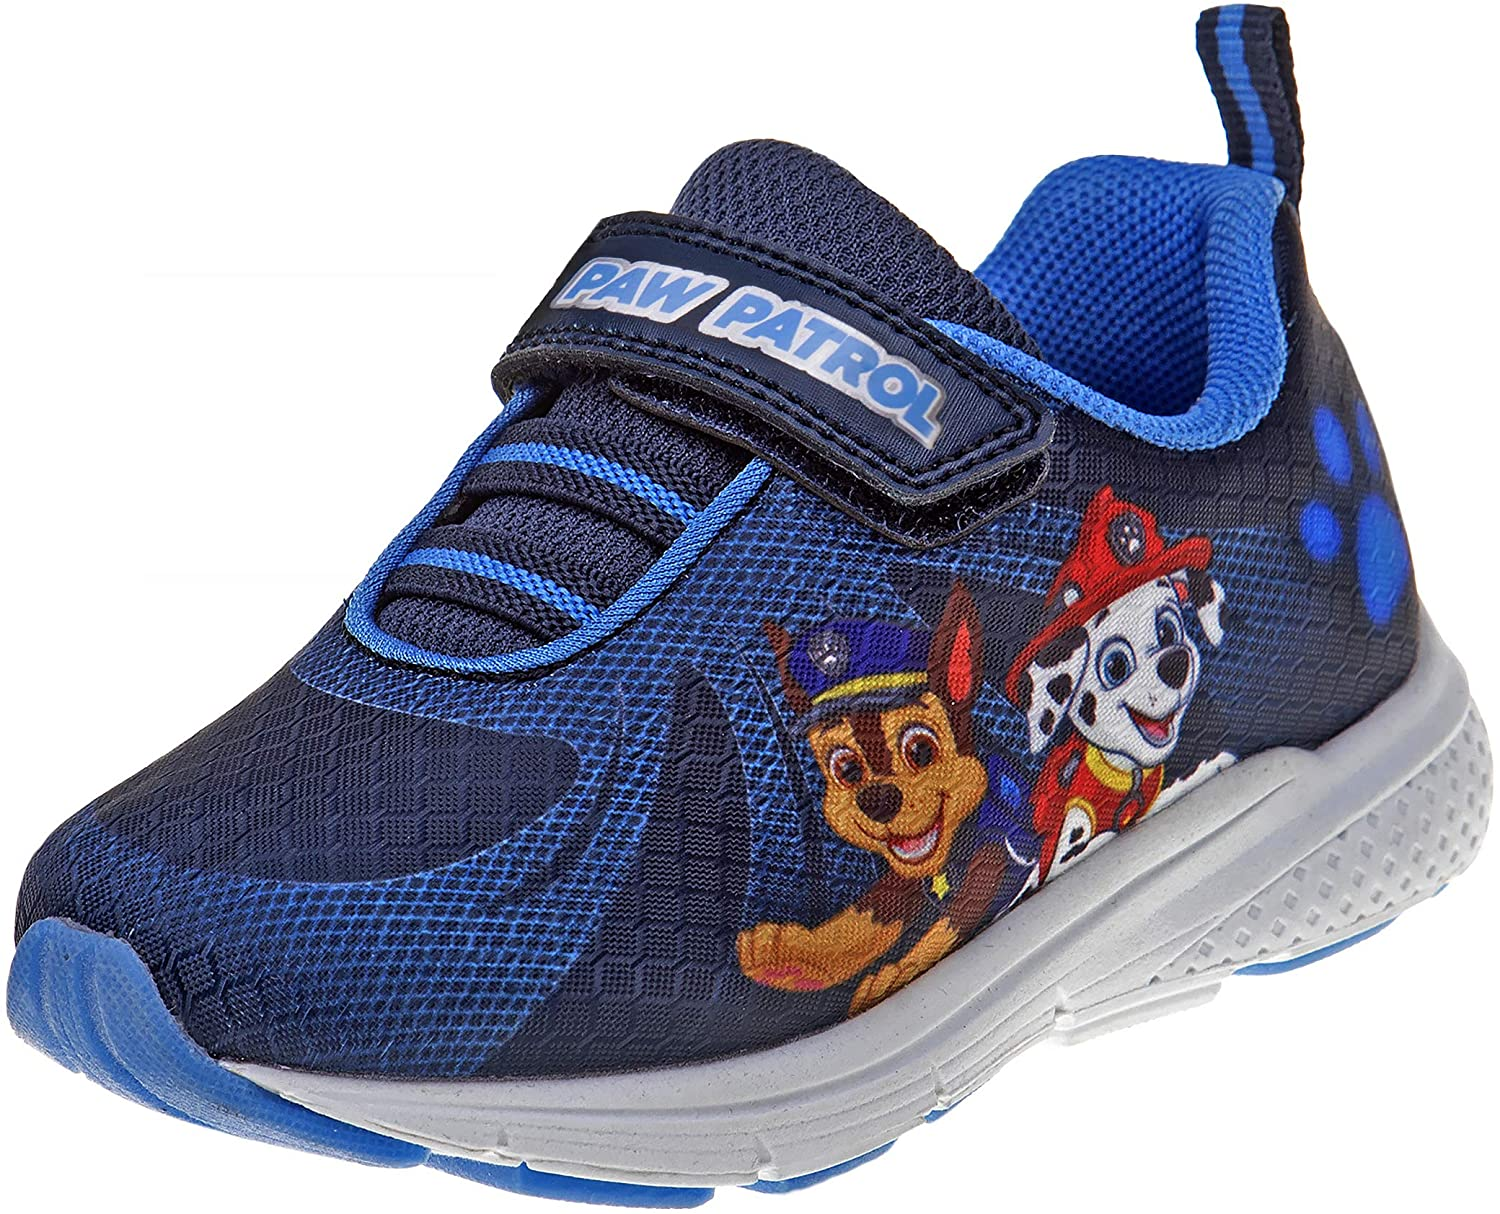 Josmo Boys Paw Patrol Lightweight Sneaker with Easy Strap Closure, Navy/Royal Blue, Size 6 Toddler